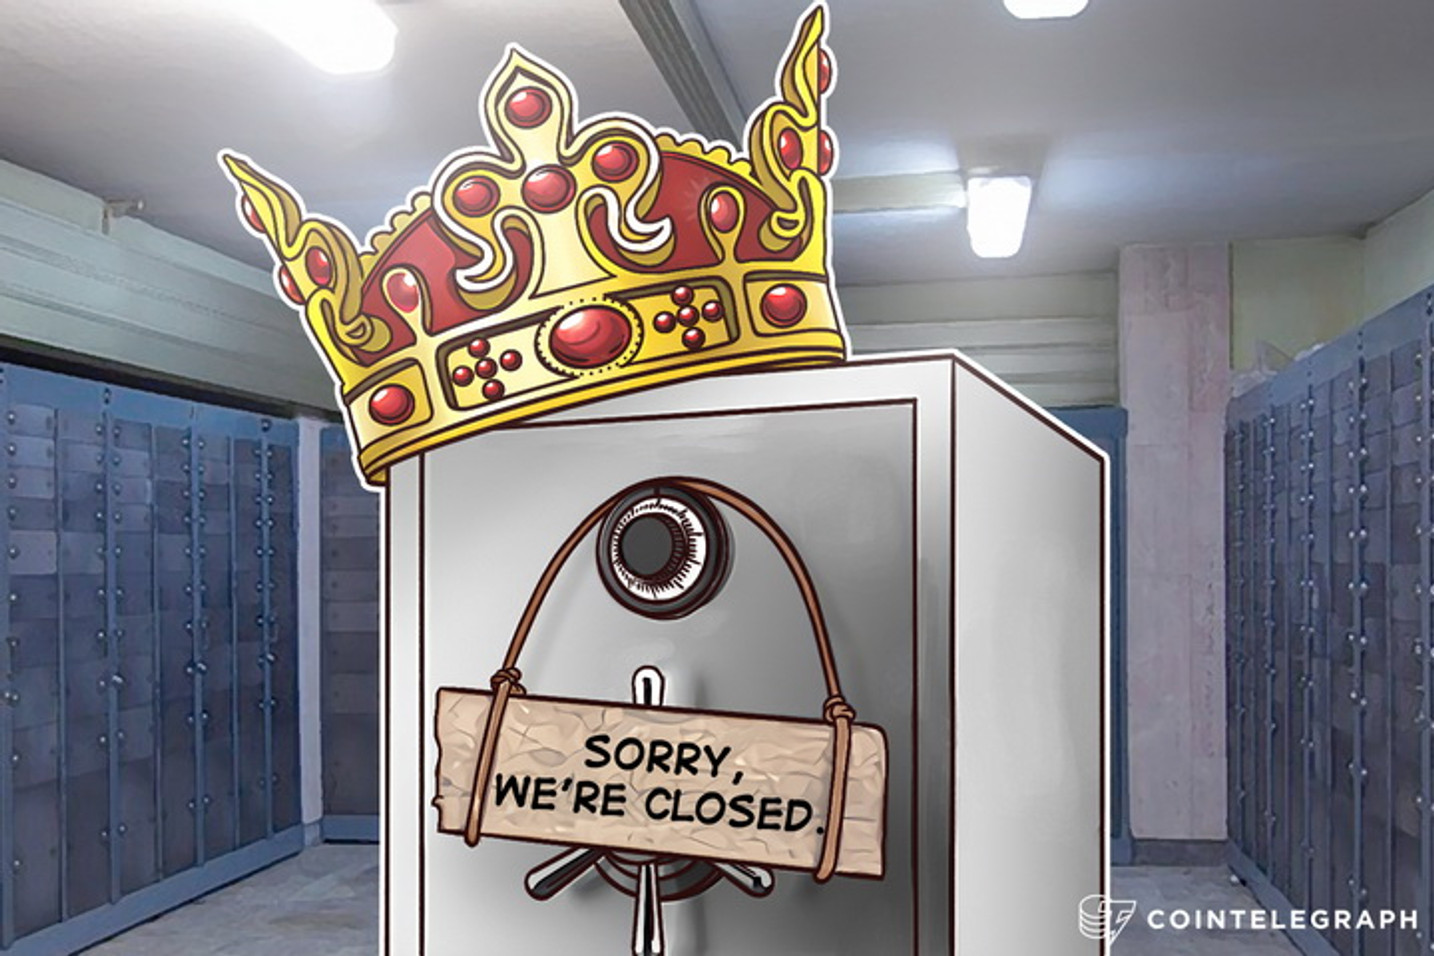 Largest Swedish Gold Dealer Has Bank Accounts Closed: Time for Bitcoin?